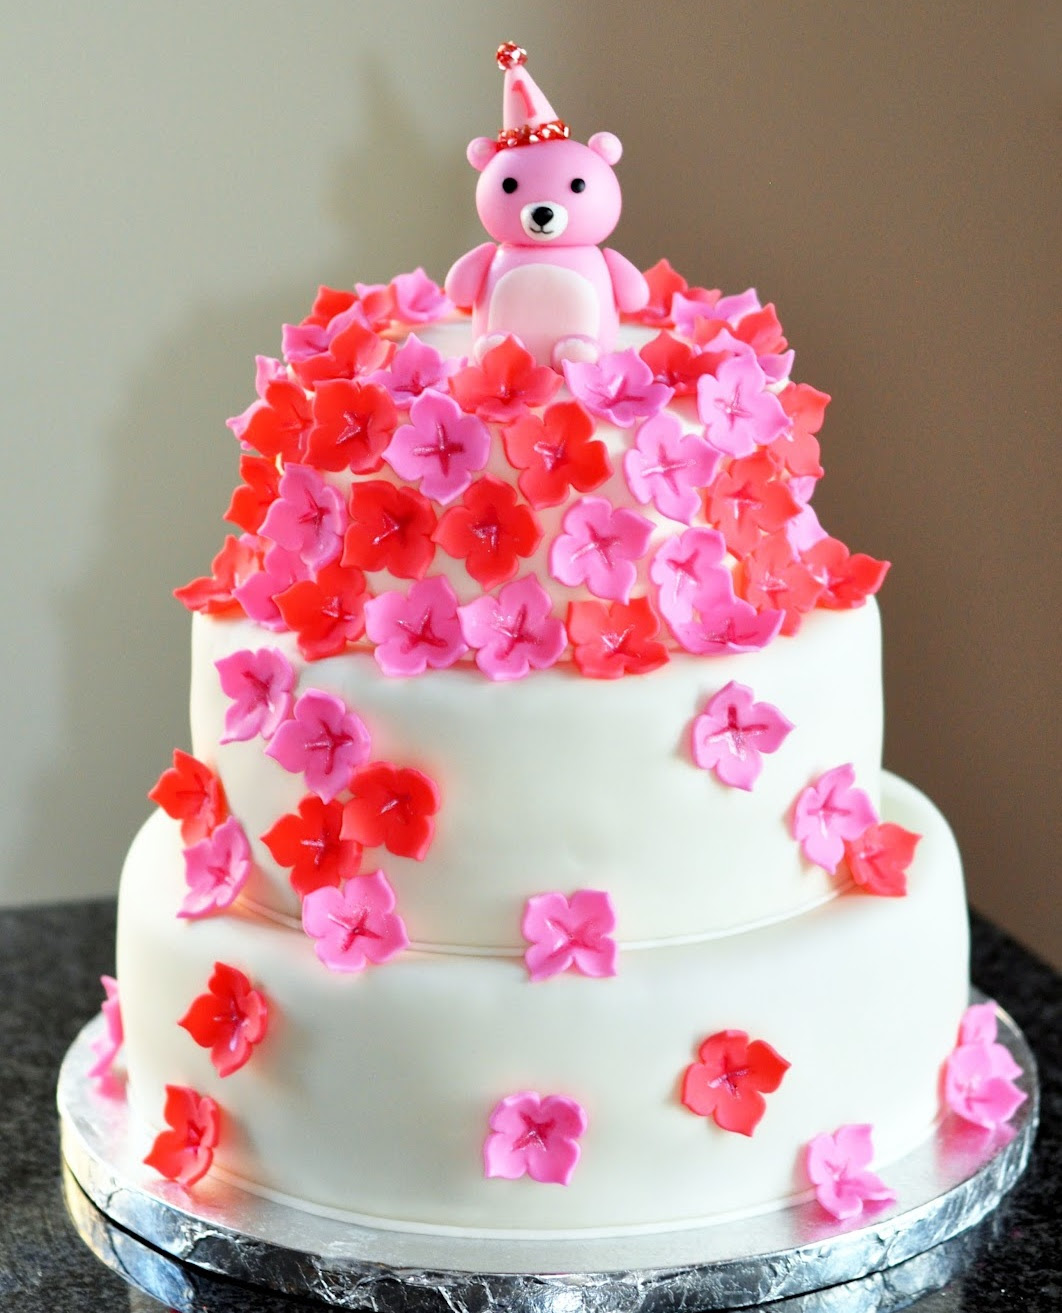 Wondrous Images Of Flower Birthday Cakes Top Collection Of Different Funny Birthday Cards Online Hetedamsfinfo